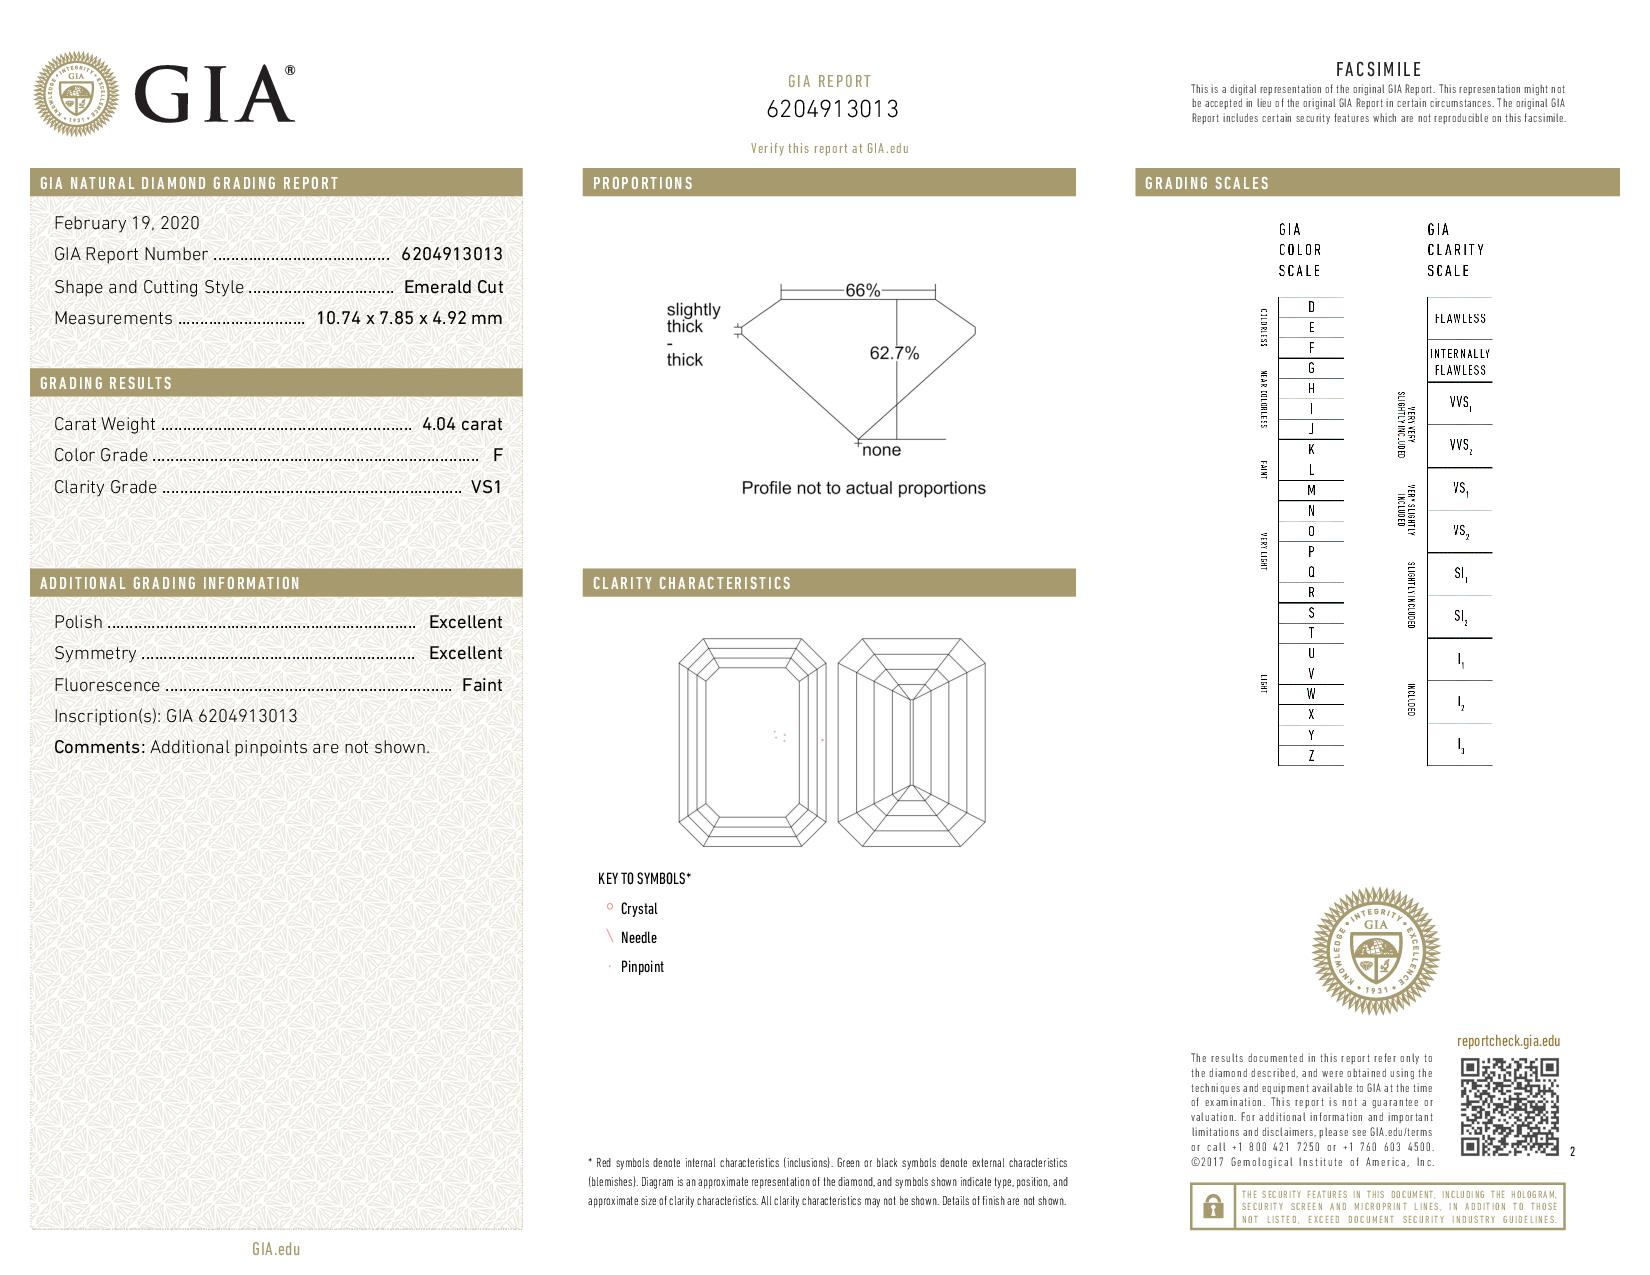 This is a 4.04 carat emerald shape, F color, VS1 clarity natural diamond accompanied by a GIA grading report.